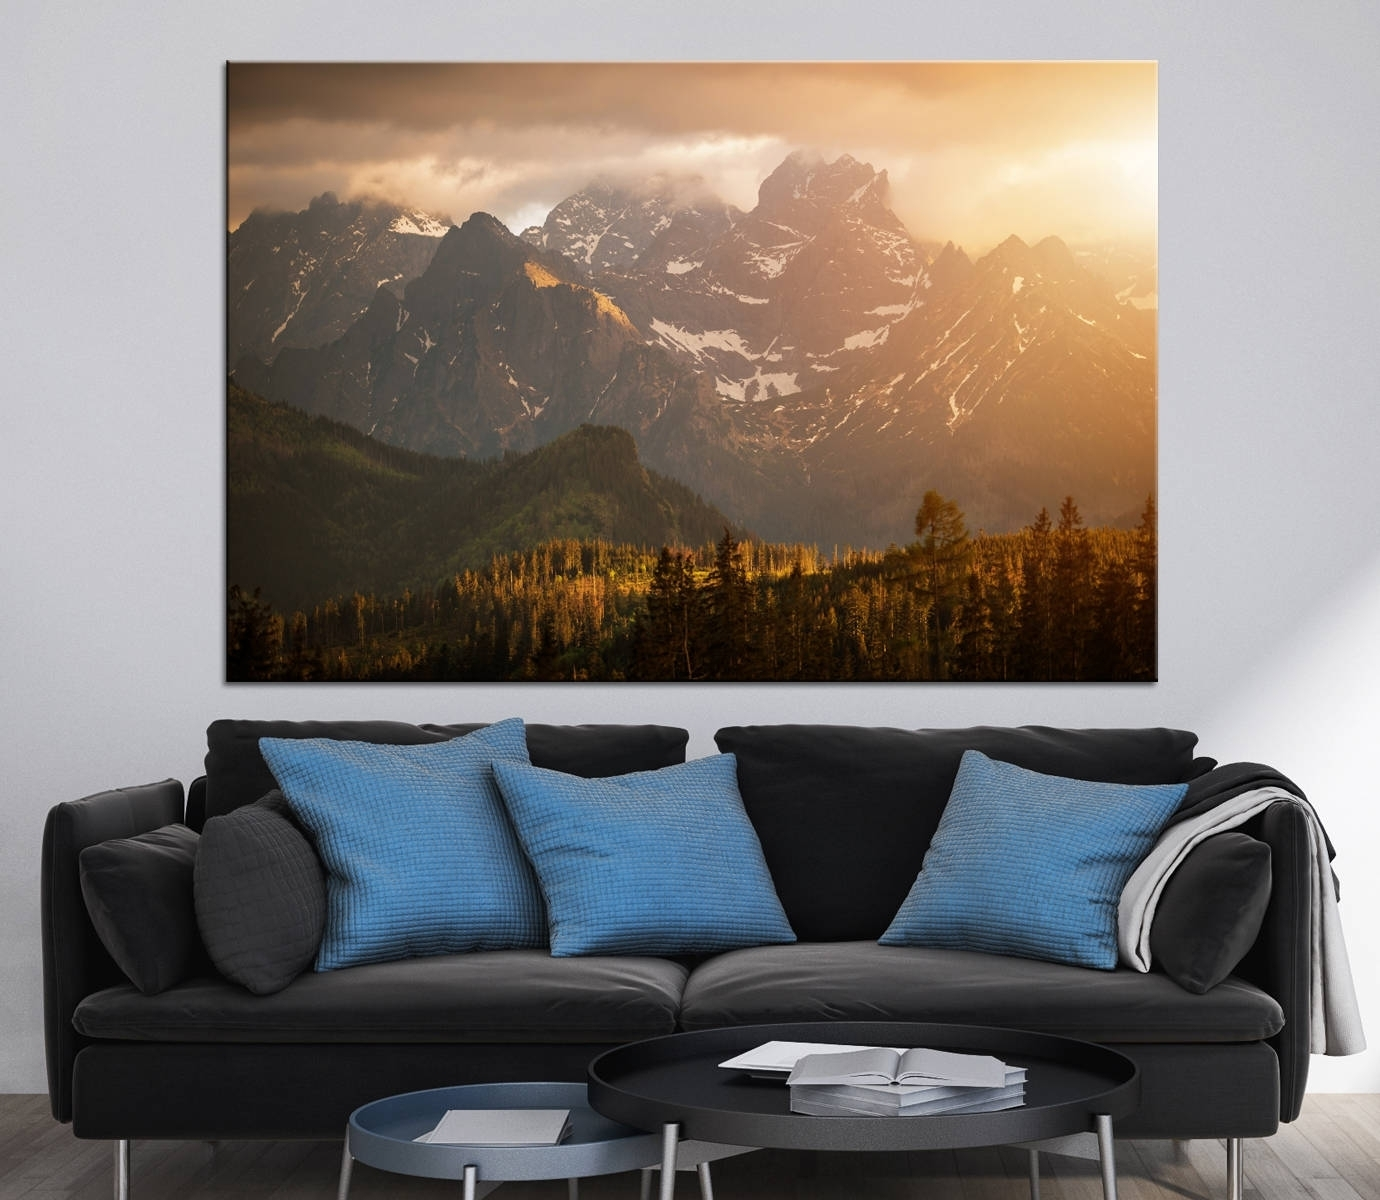 New Canvas Wall Art Nature | Wall Decorations With Most Current Nature Wall Art (View 15 of 20)